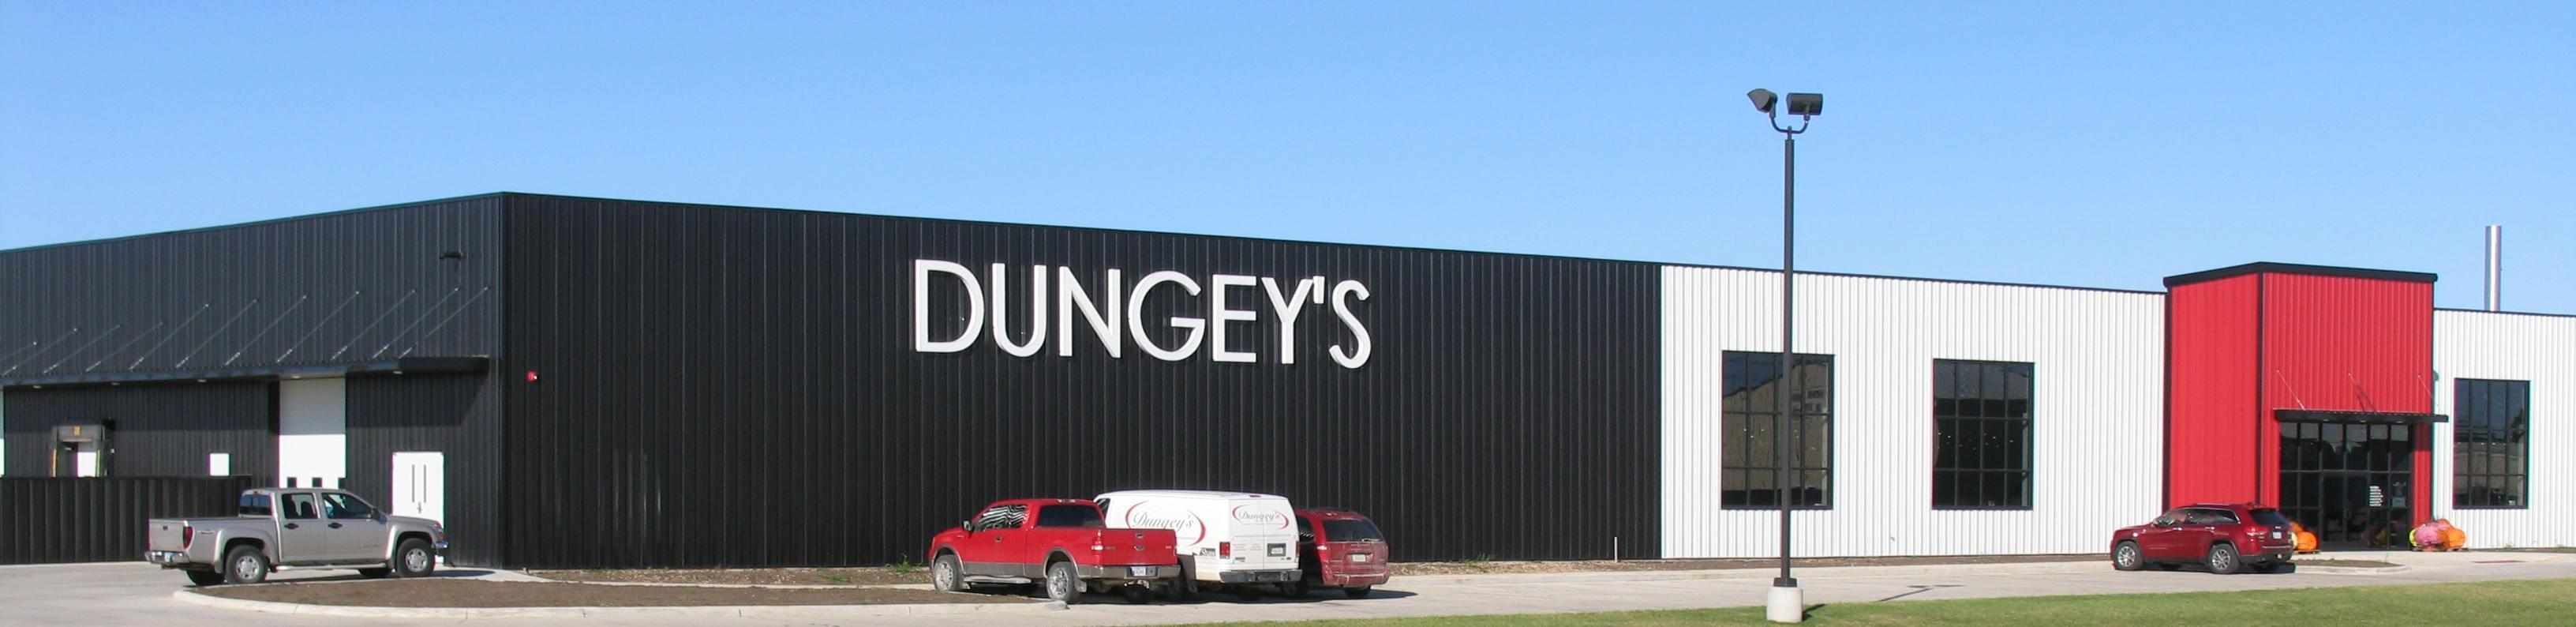 Holschlag Bin Sales_Dungey's Furniture New Hampton